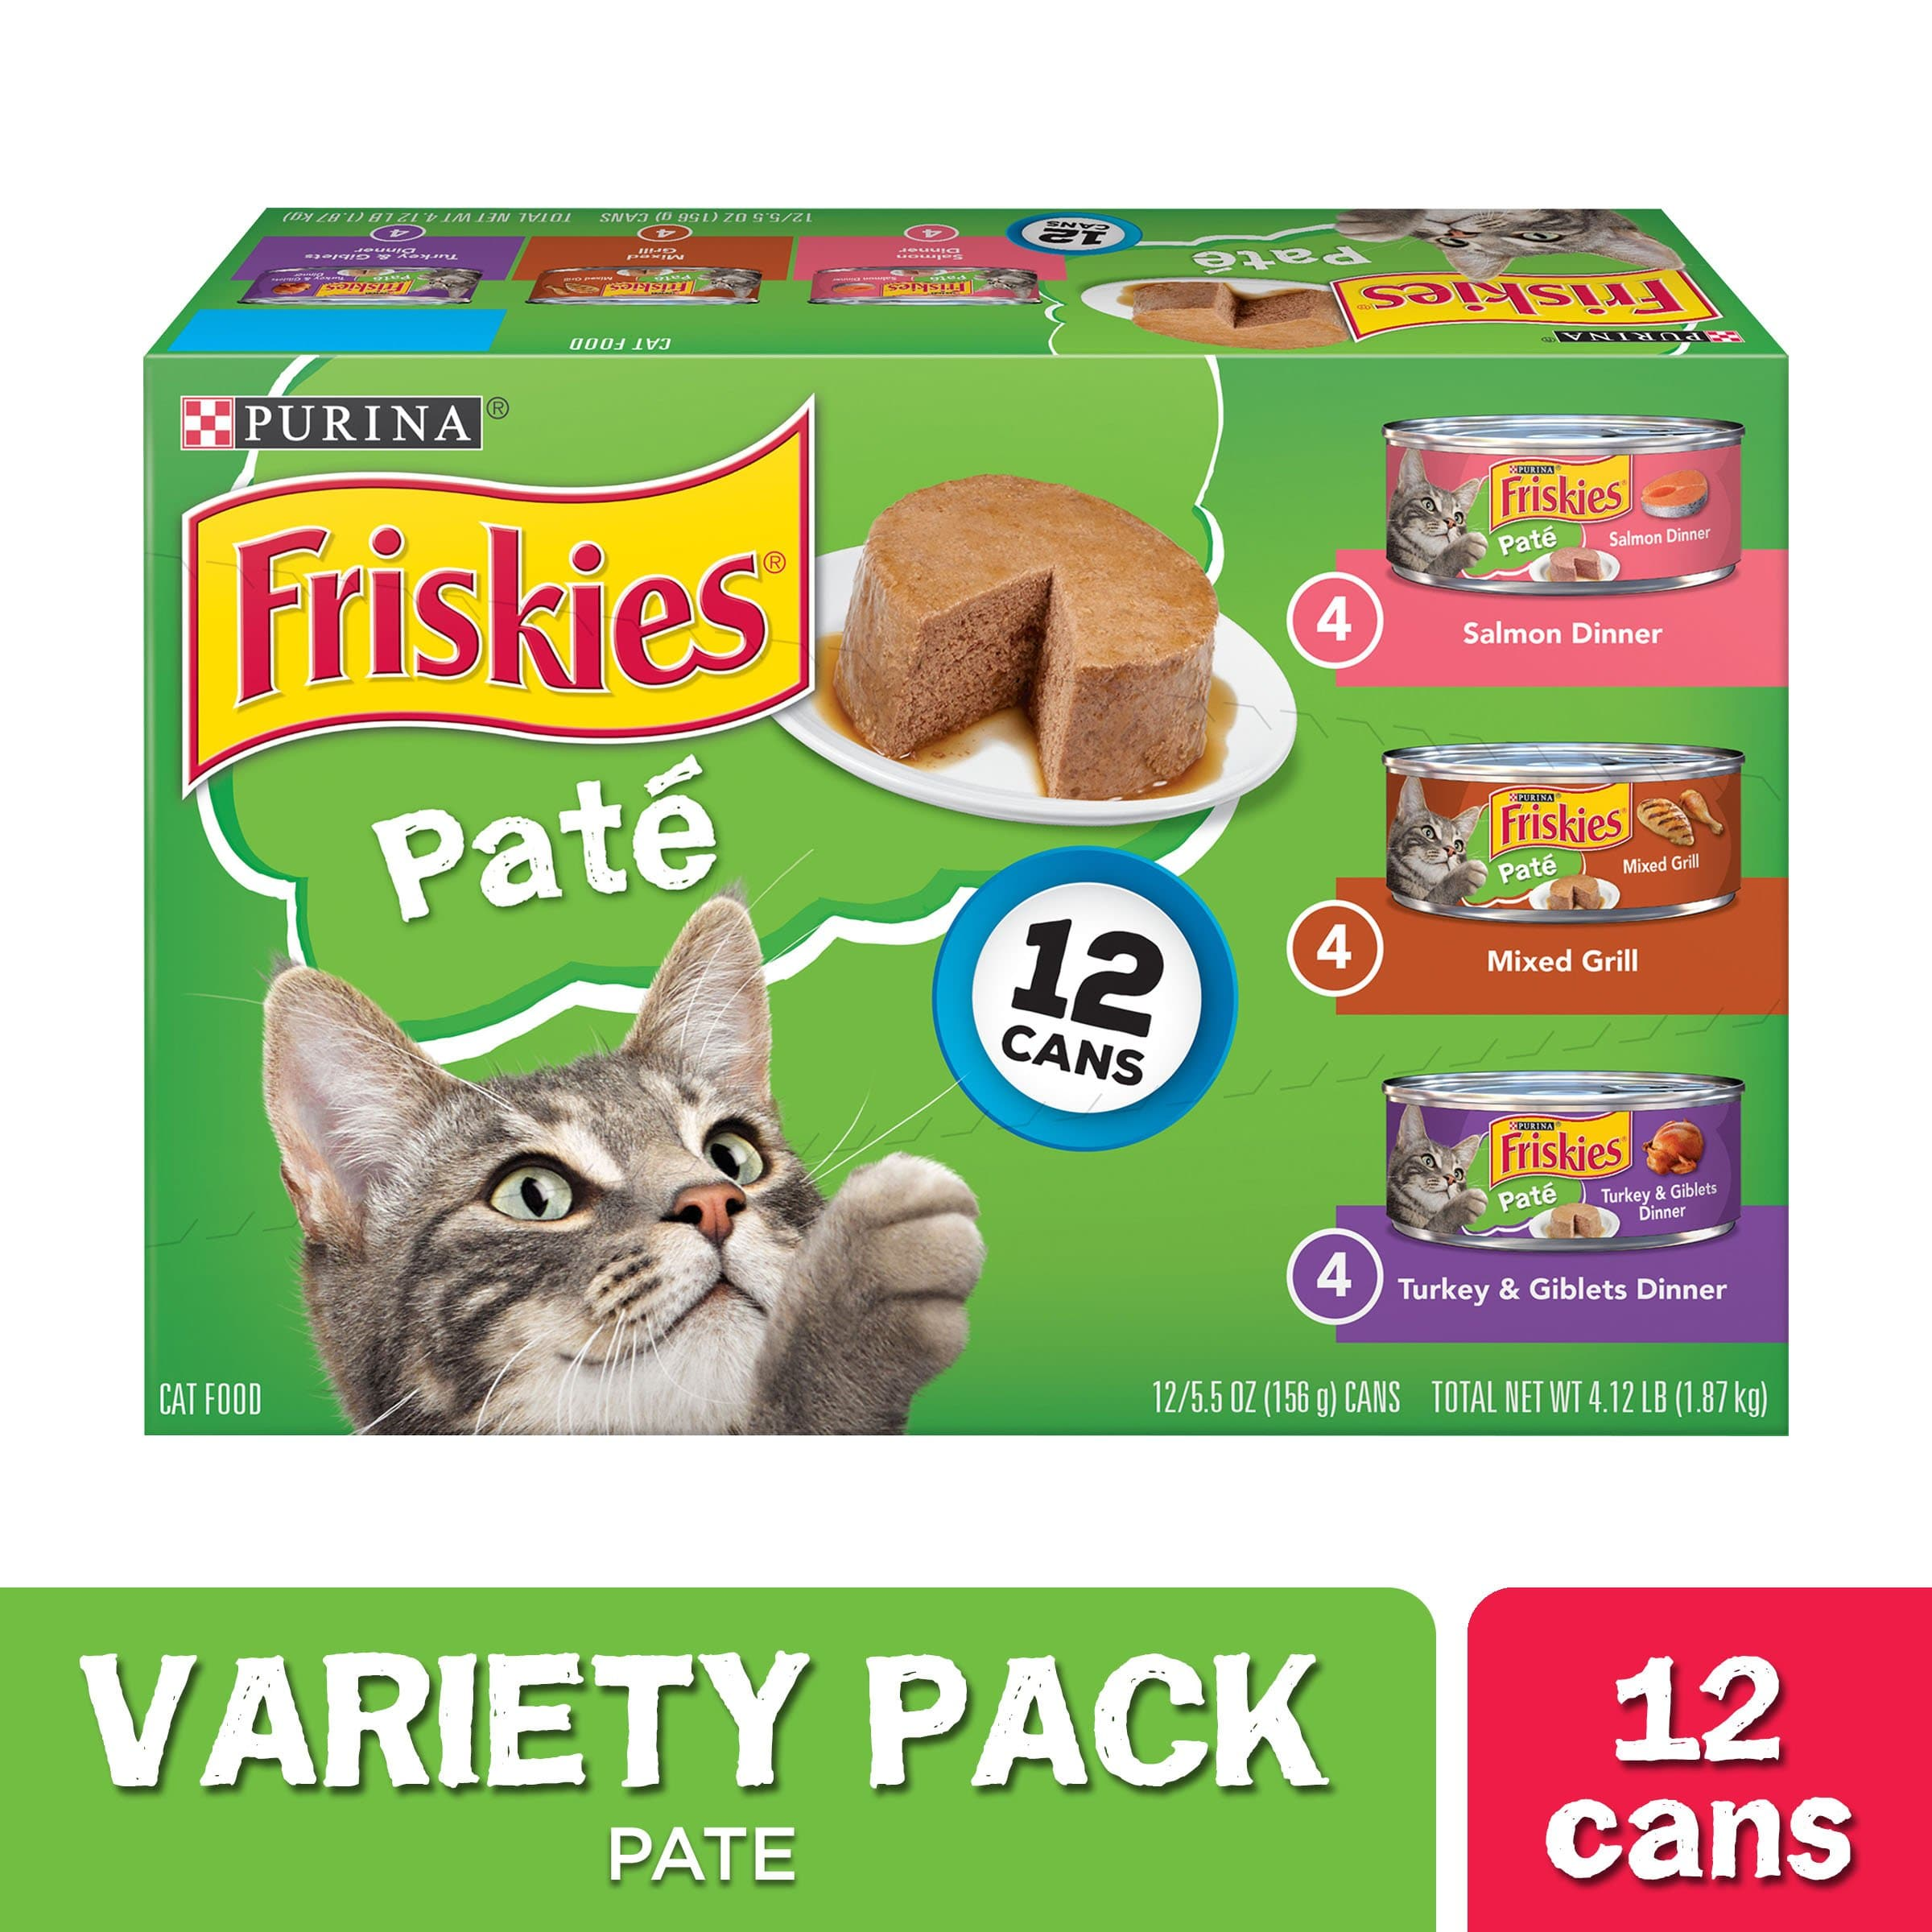 (12 Pack) Friskies Pate Wet Cat Food Variety Pack, Salmon, Turkey & Grilled, 5.5 oz. Cans - FLJ CORPORATIONS